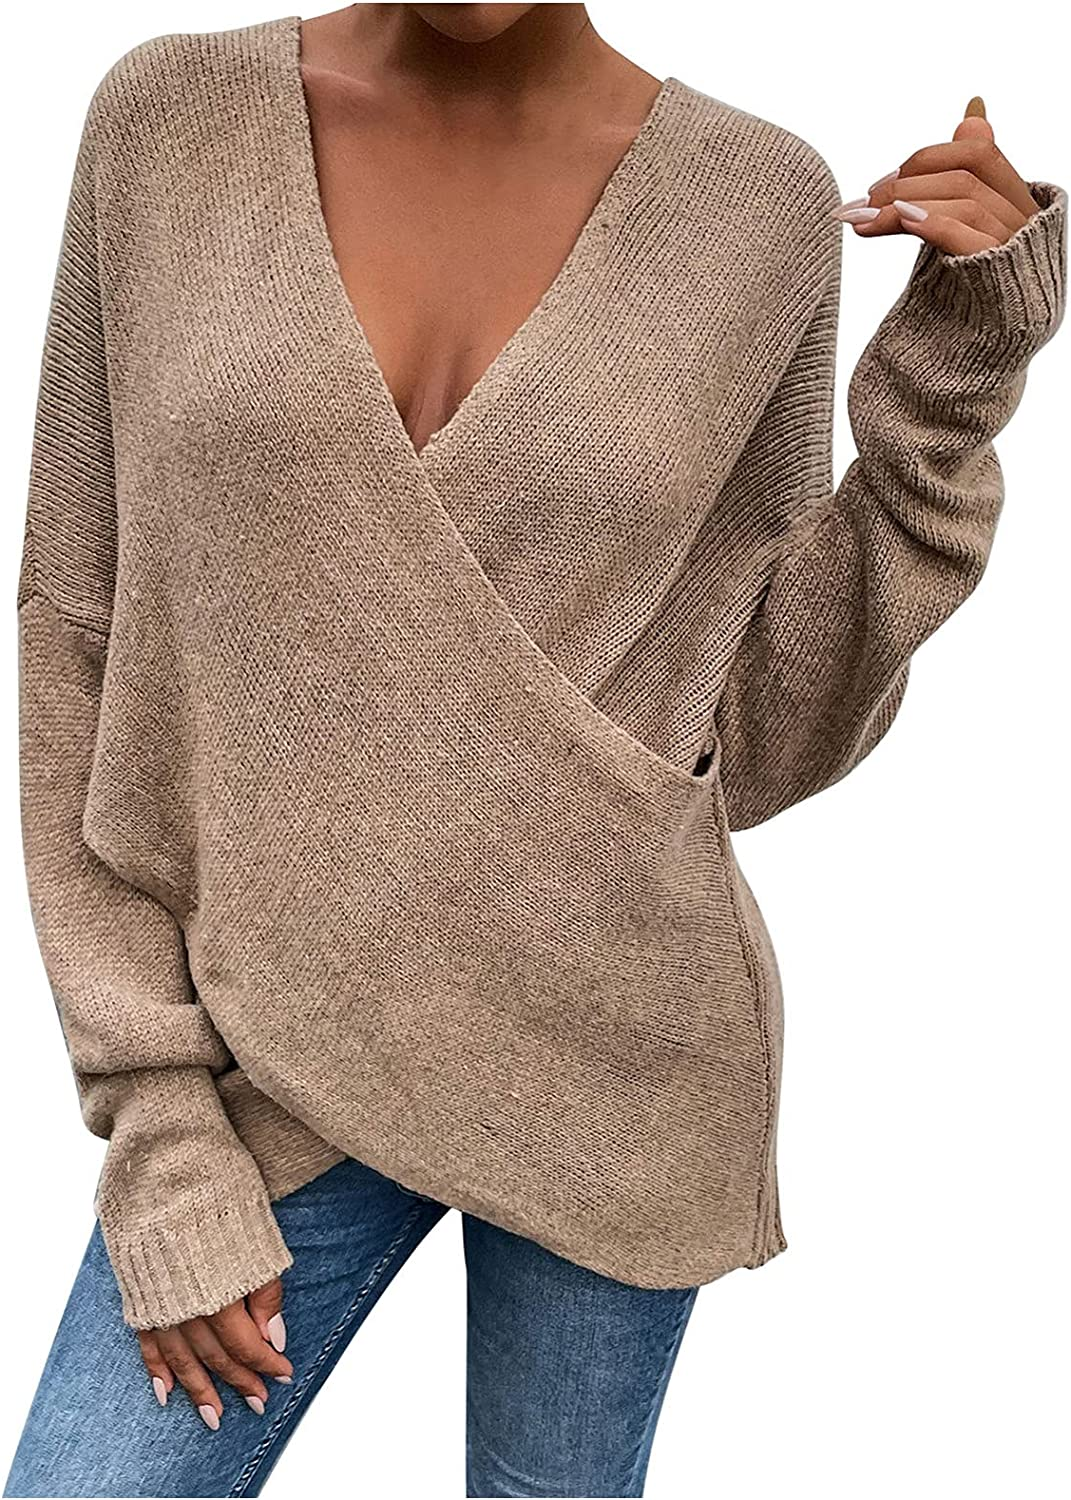 JIANGZHo Women V-Neck Criss Cross Sweater Tops Long Sleeve Solid Color Pullover Knitted Breathable Jumper Blouses